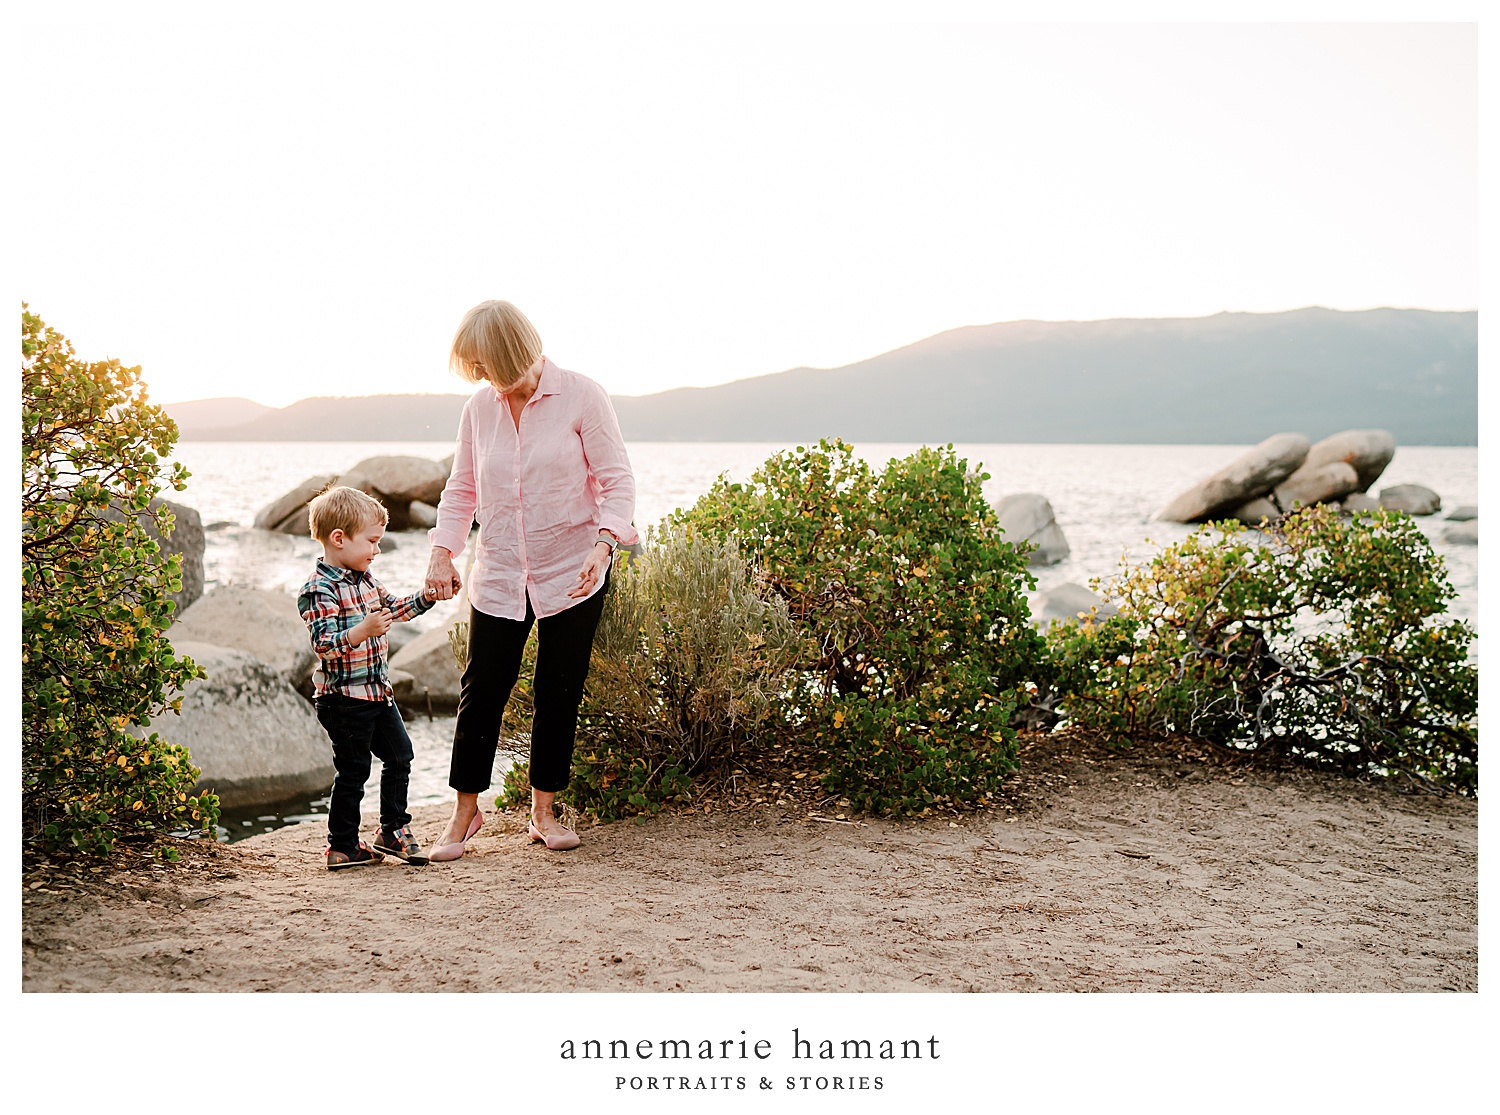 AnneMarie Hamant Portraits + Stories captures the loves of generations in her extended family sessions.